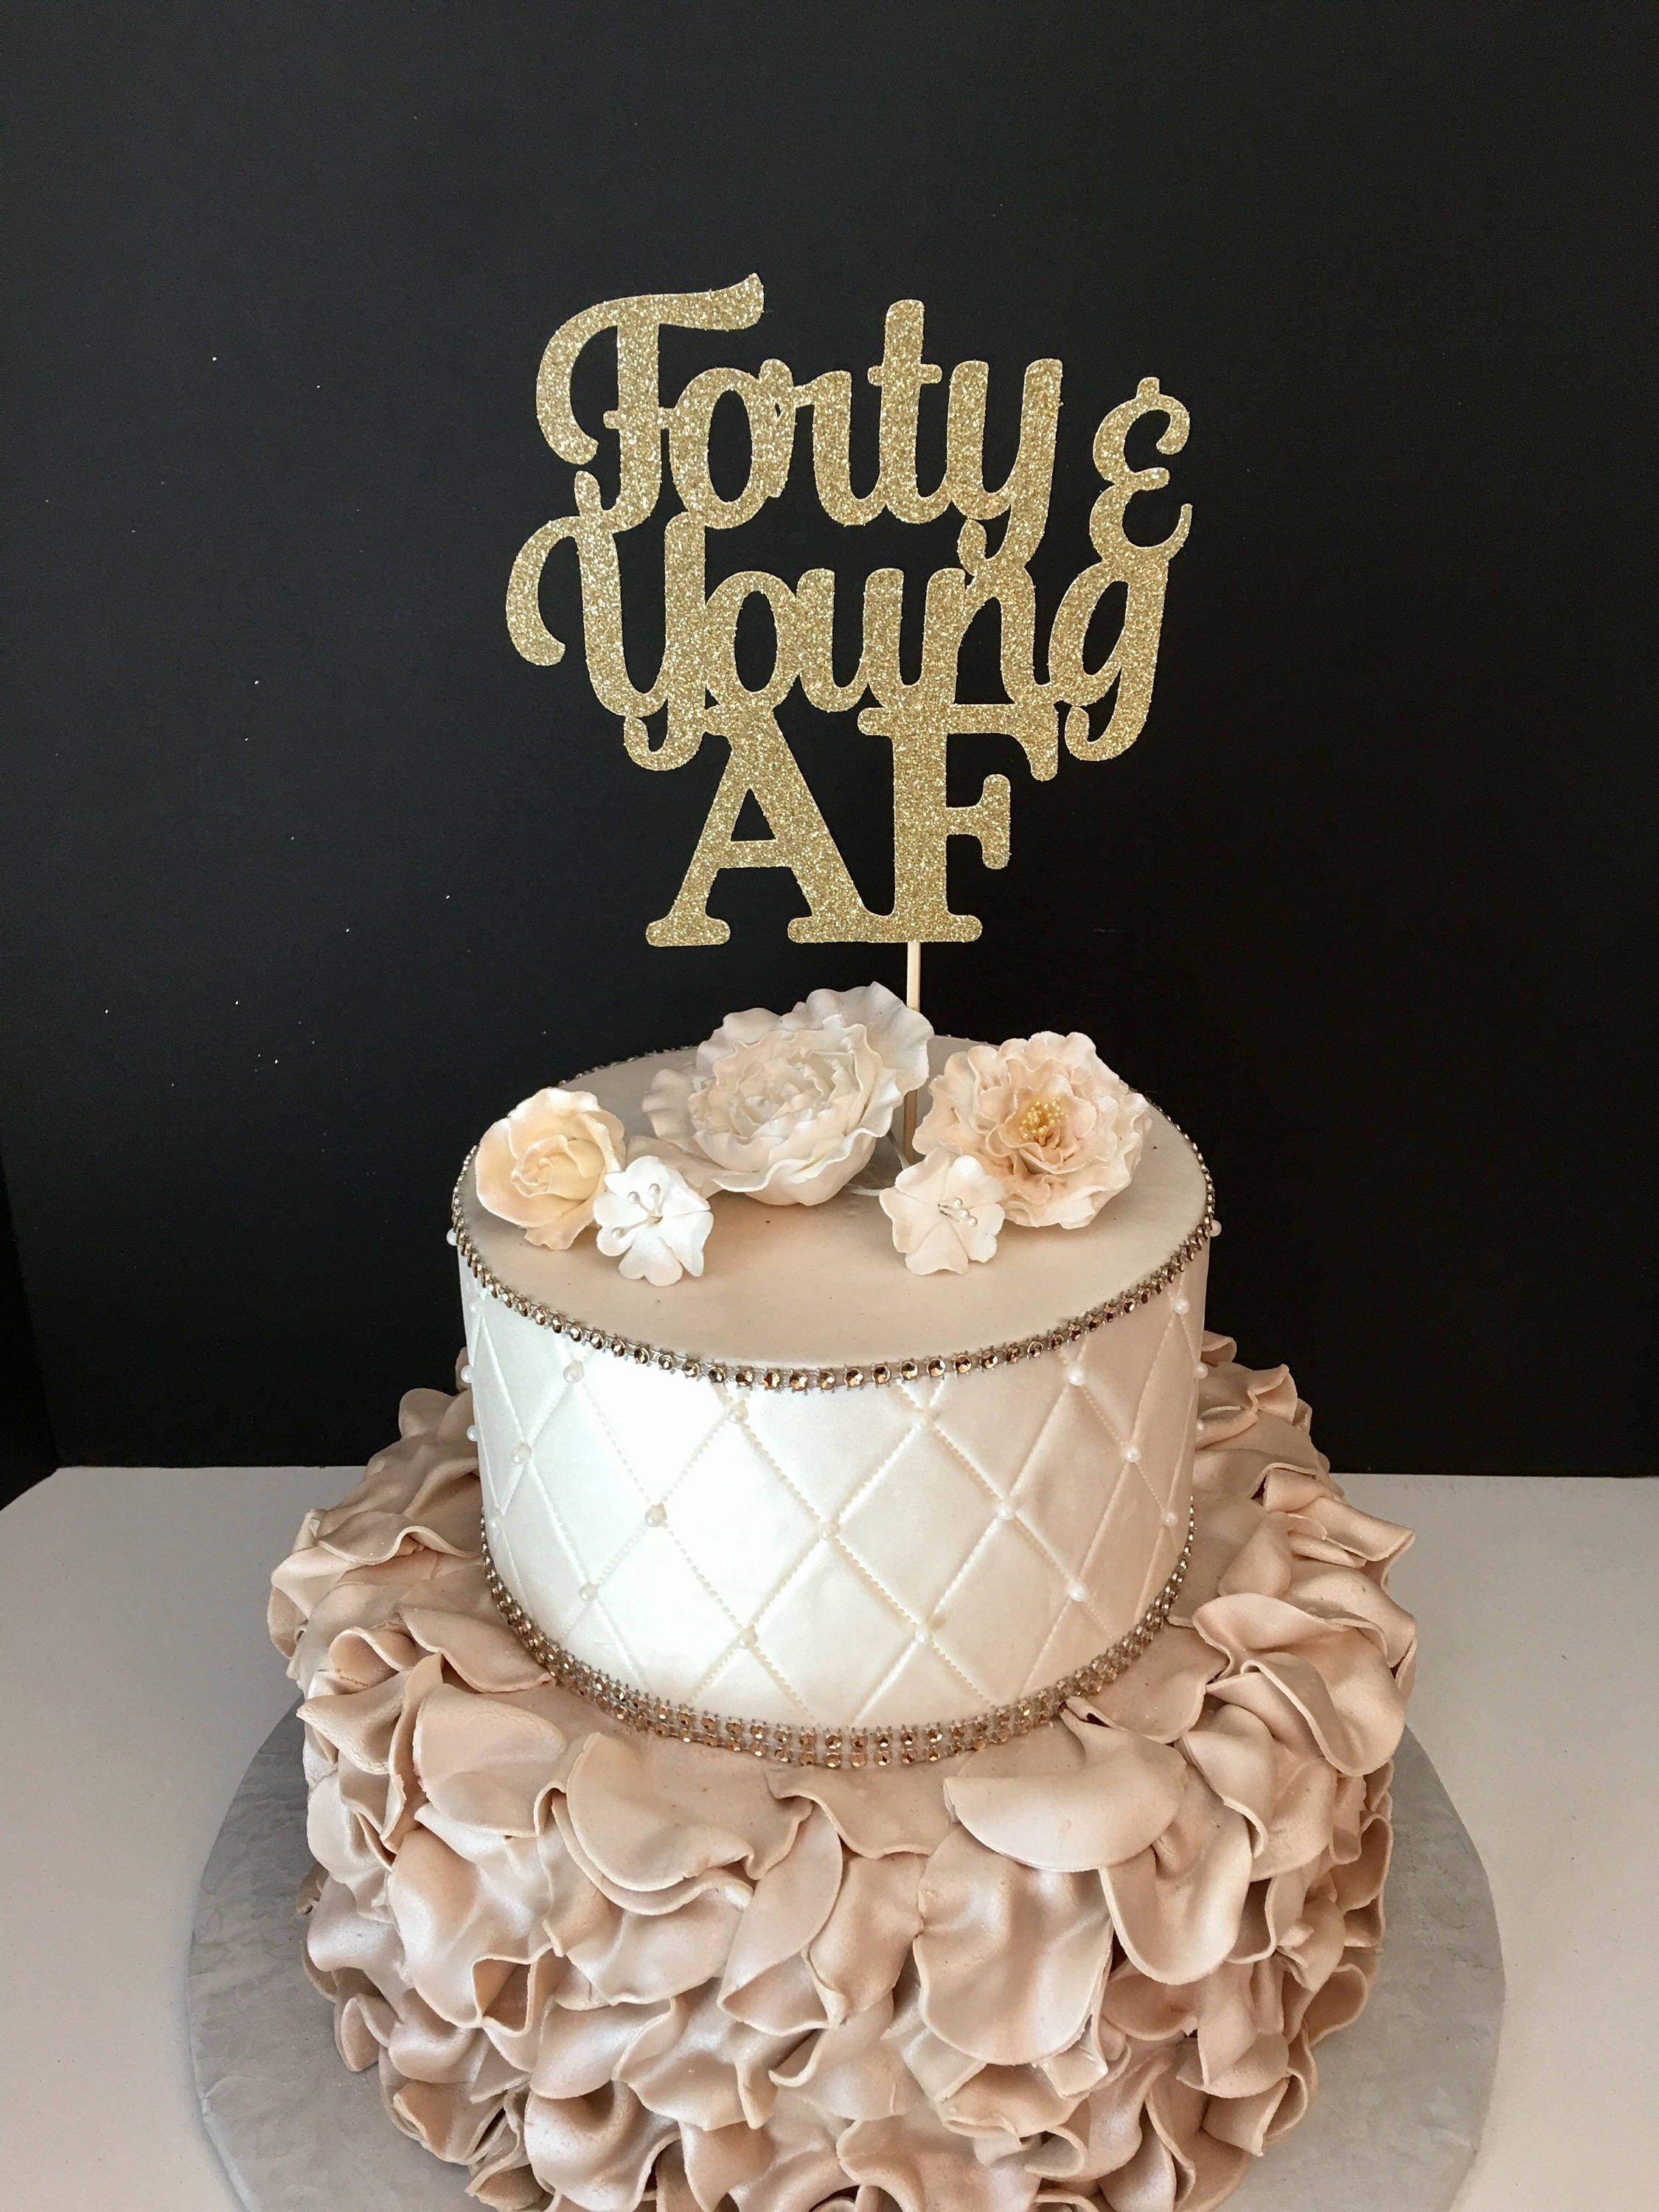 Any Number Forty And Young Af Cake Topper Birthday Cake